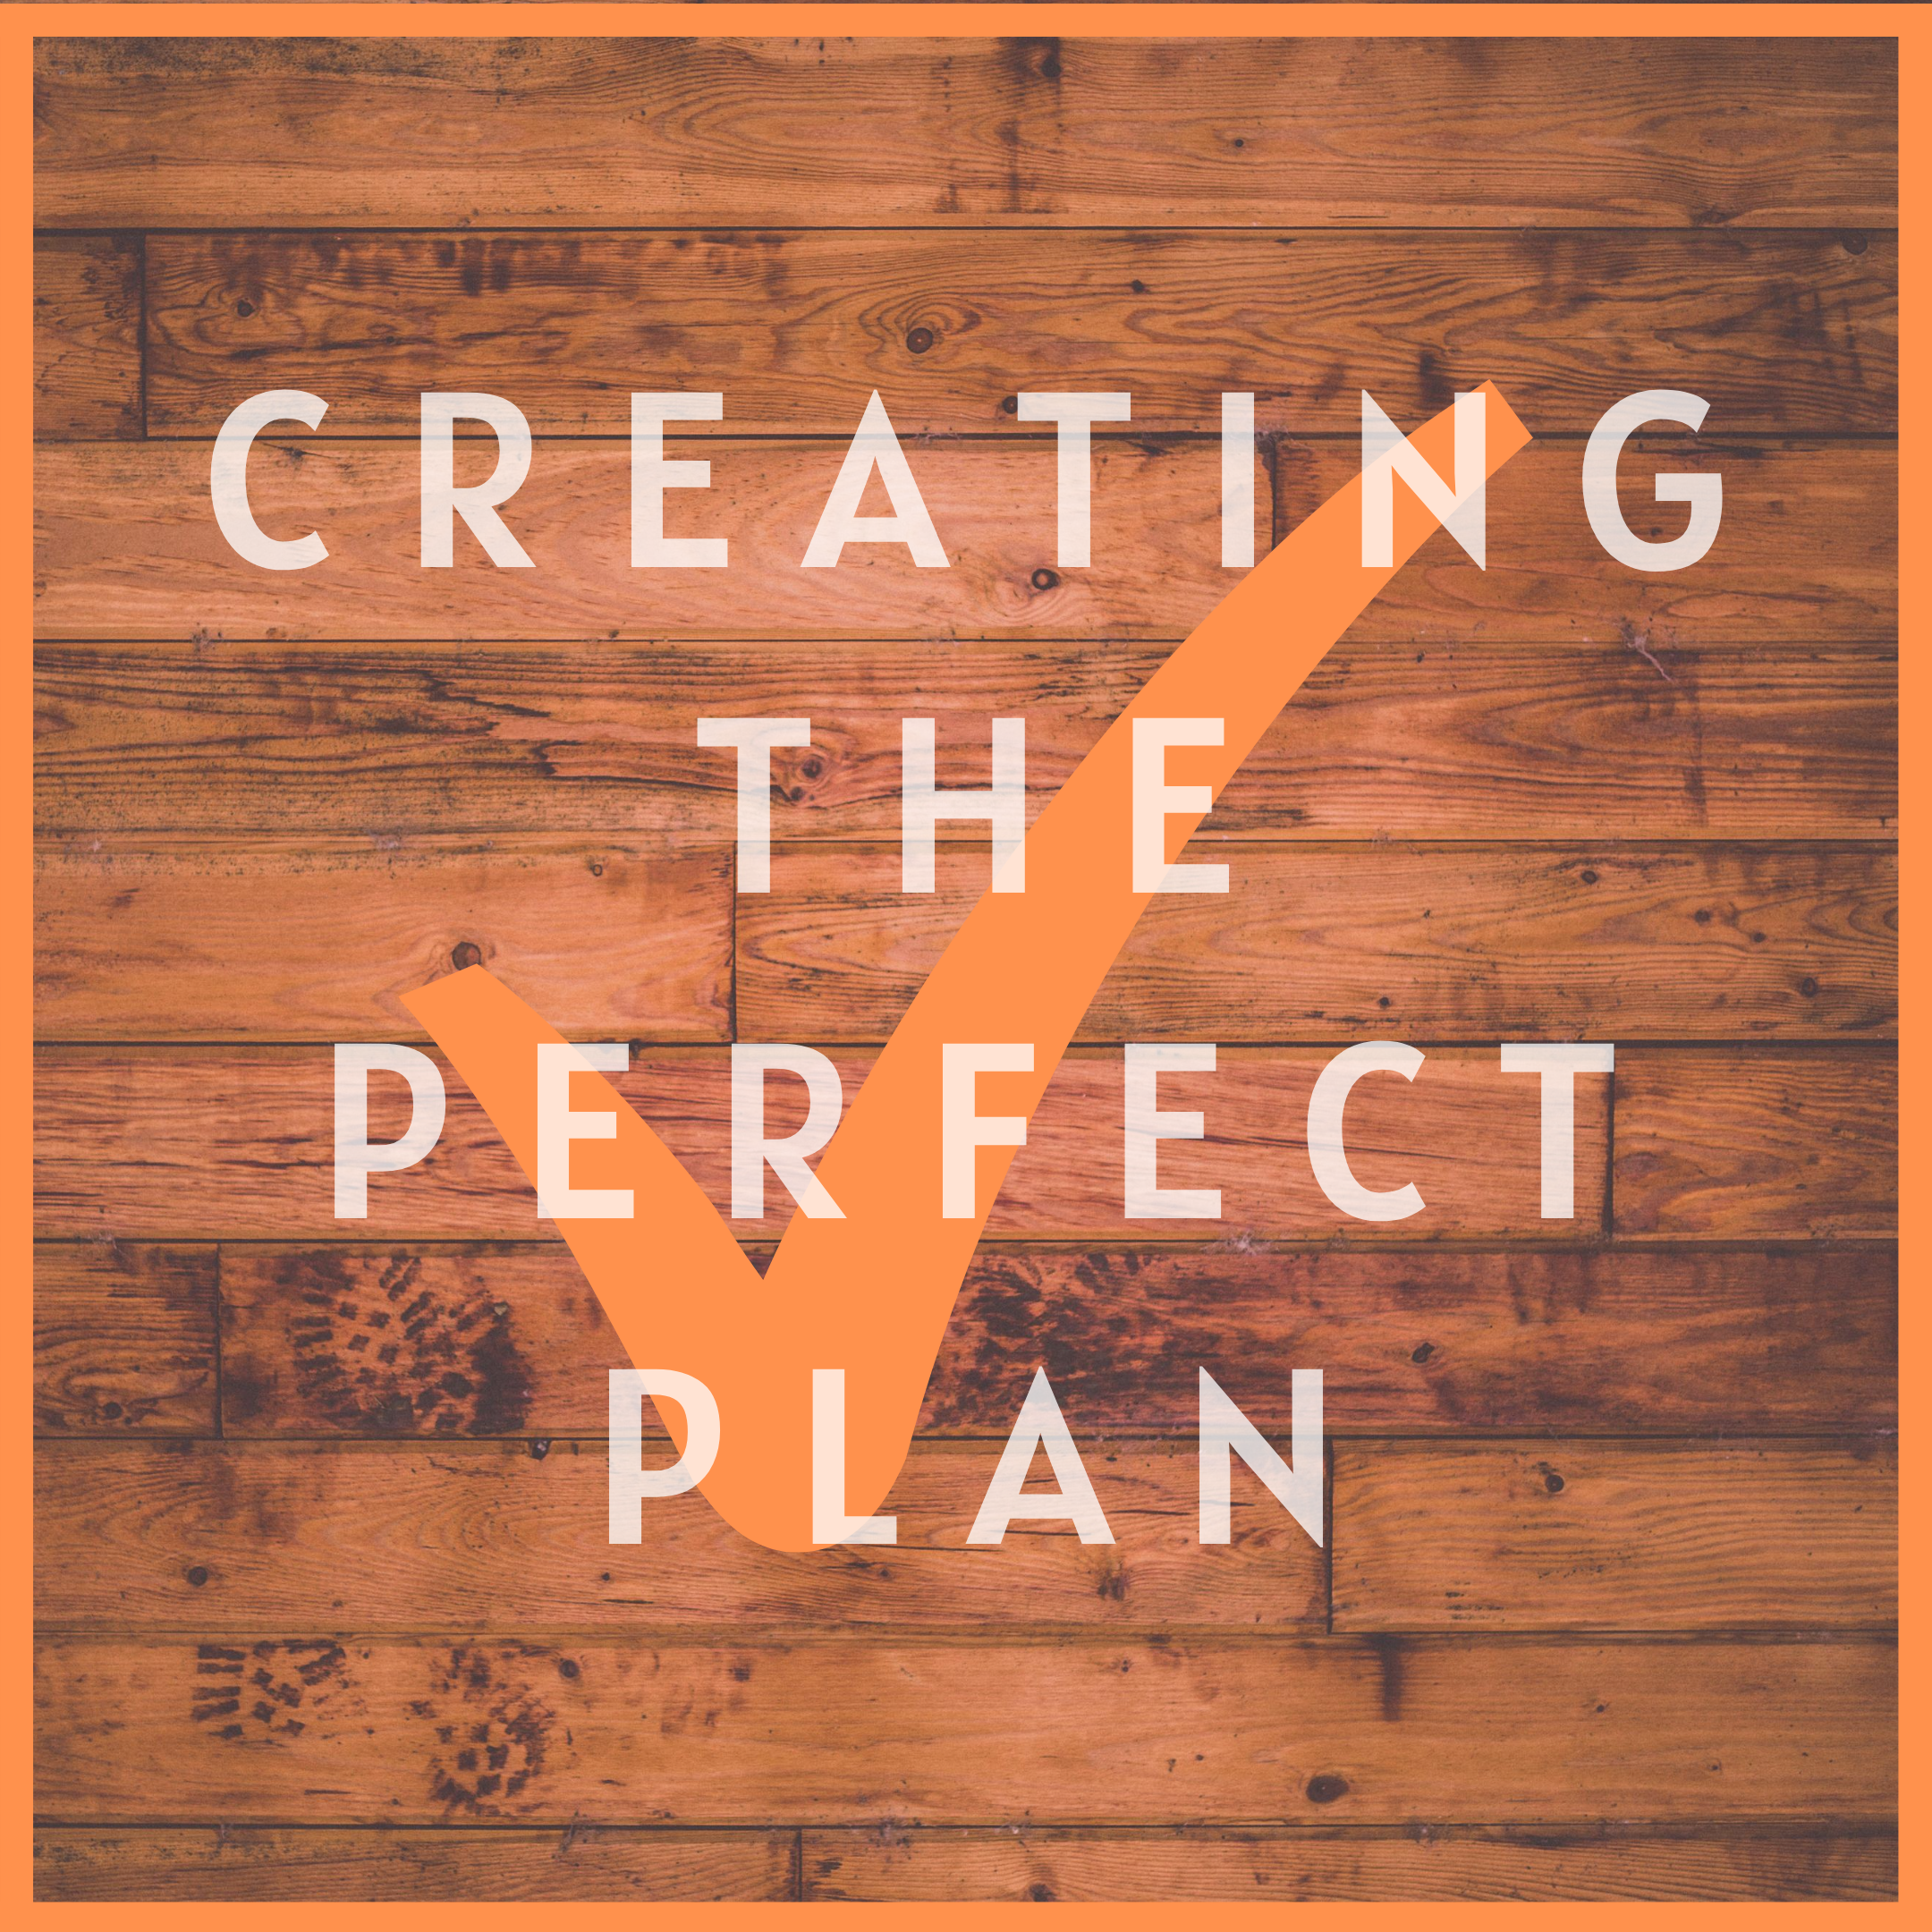 Text reading 'creating the perfect plan' with a check mark.